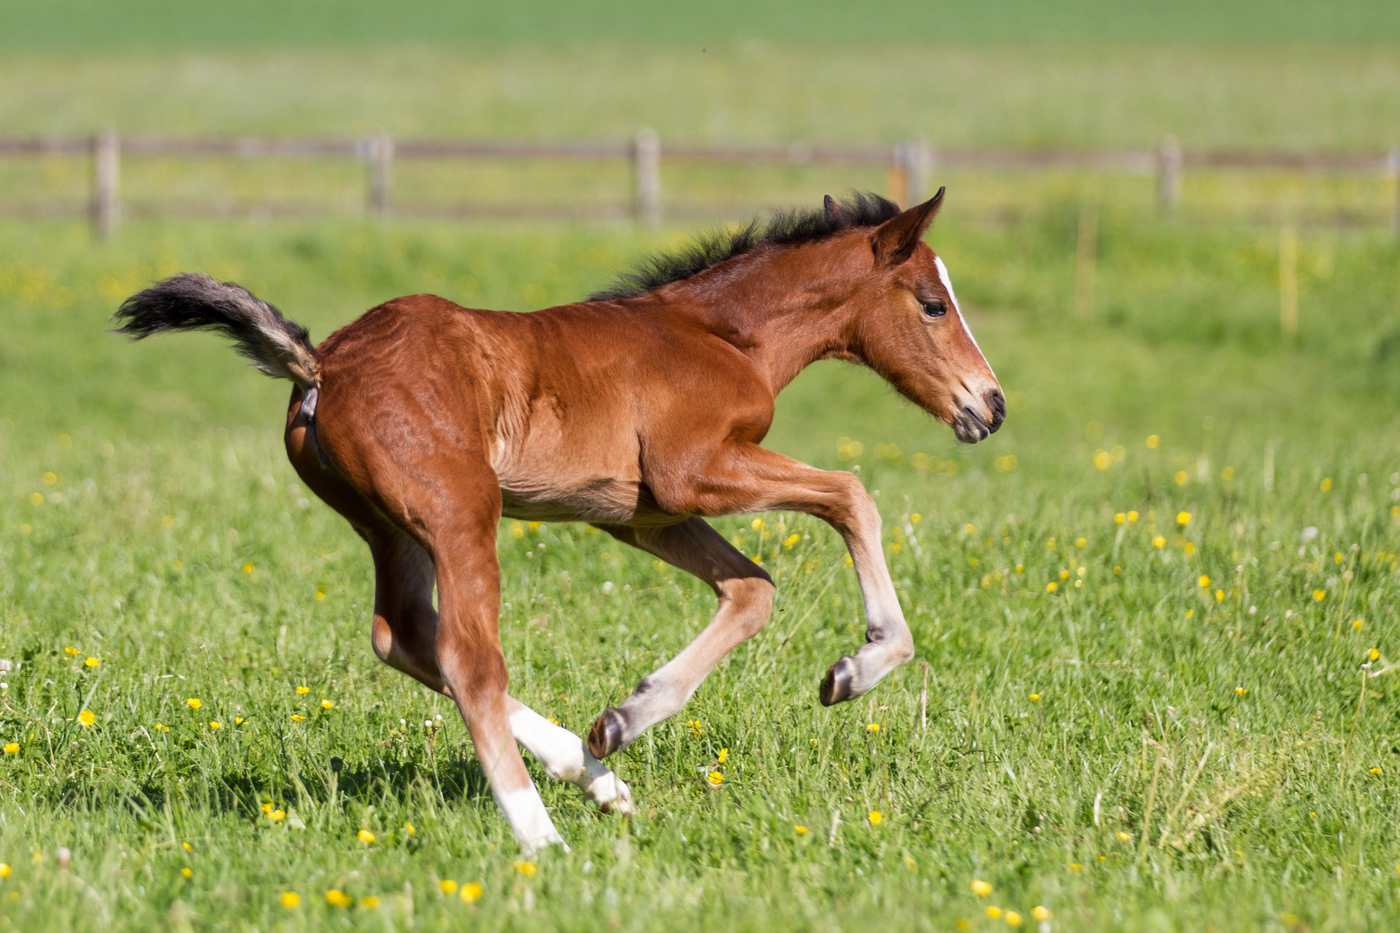 A foal playing in a yellow flowered field